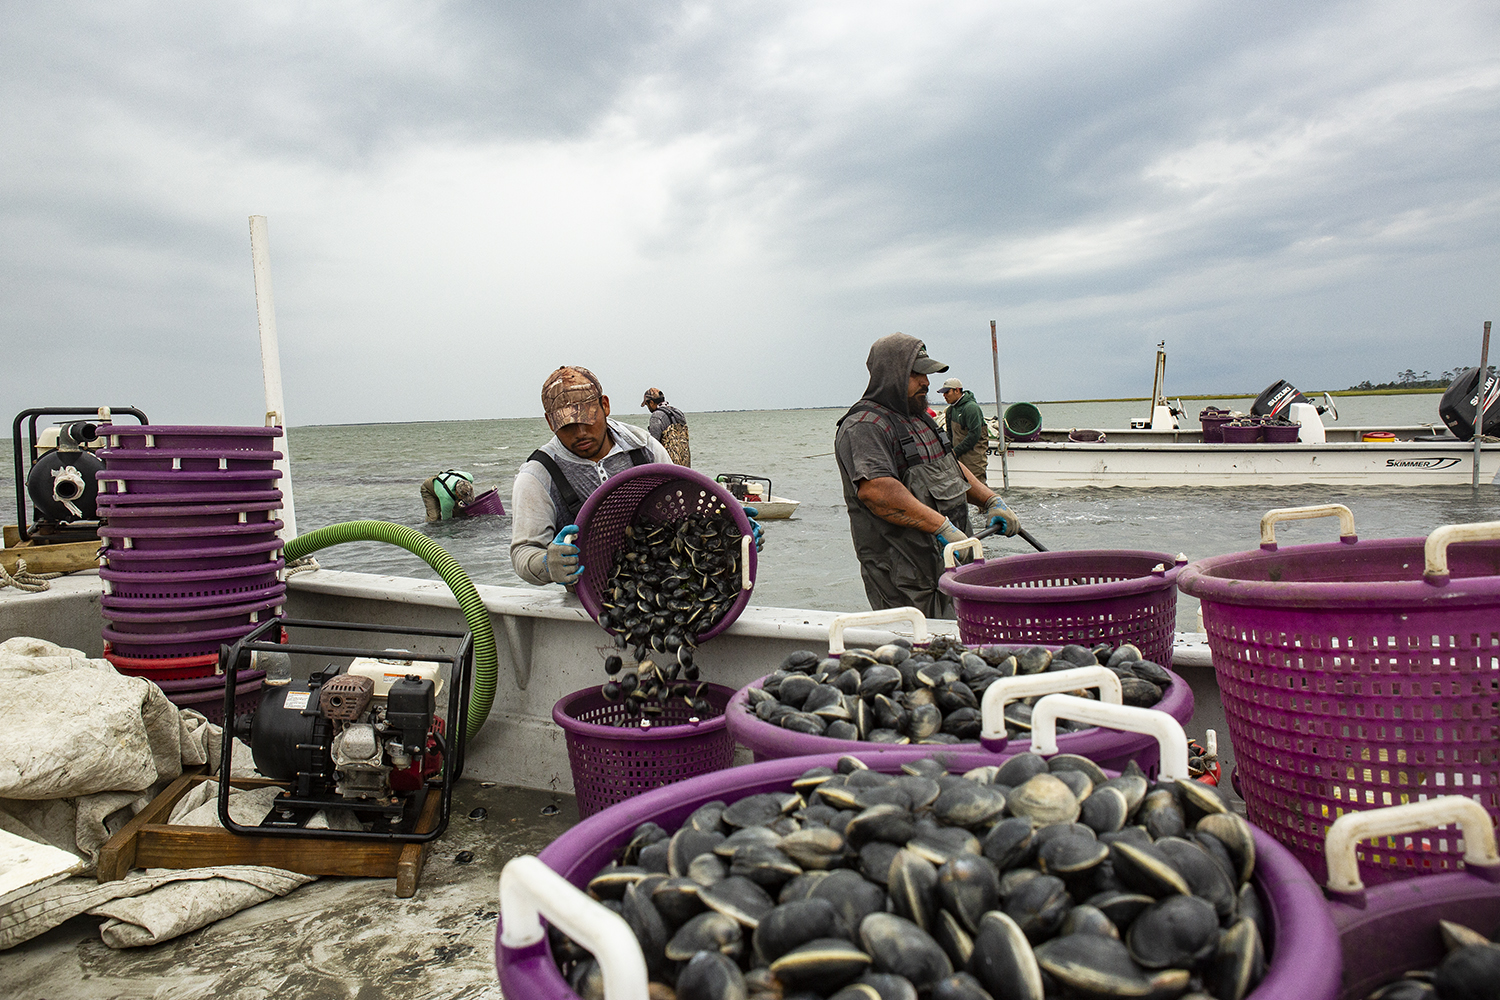 H.M. Terry Co.-Clams & Oysters, Willis Wharf, Virginia